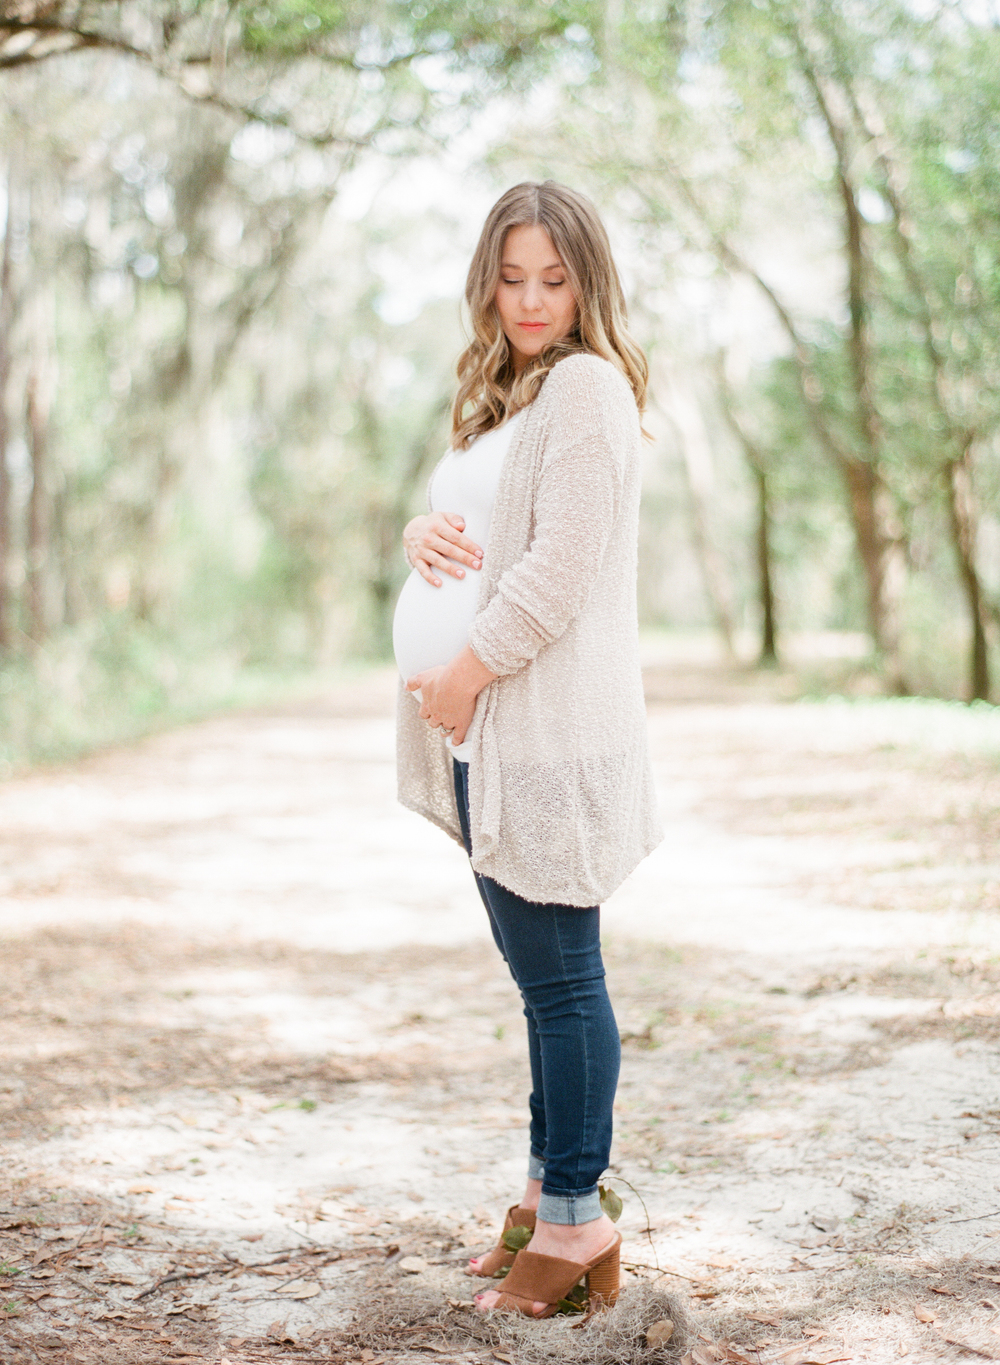 Dave Lapham Photography | Maternity Photos | Lakeland Florida